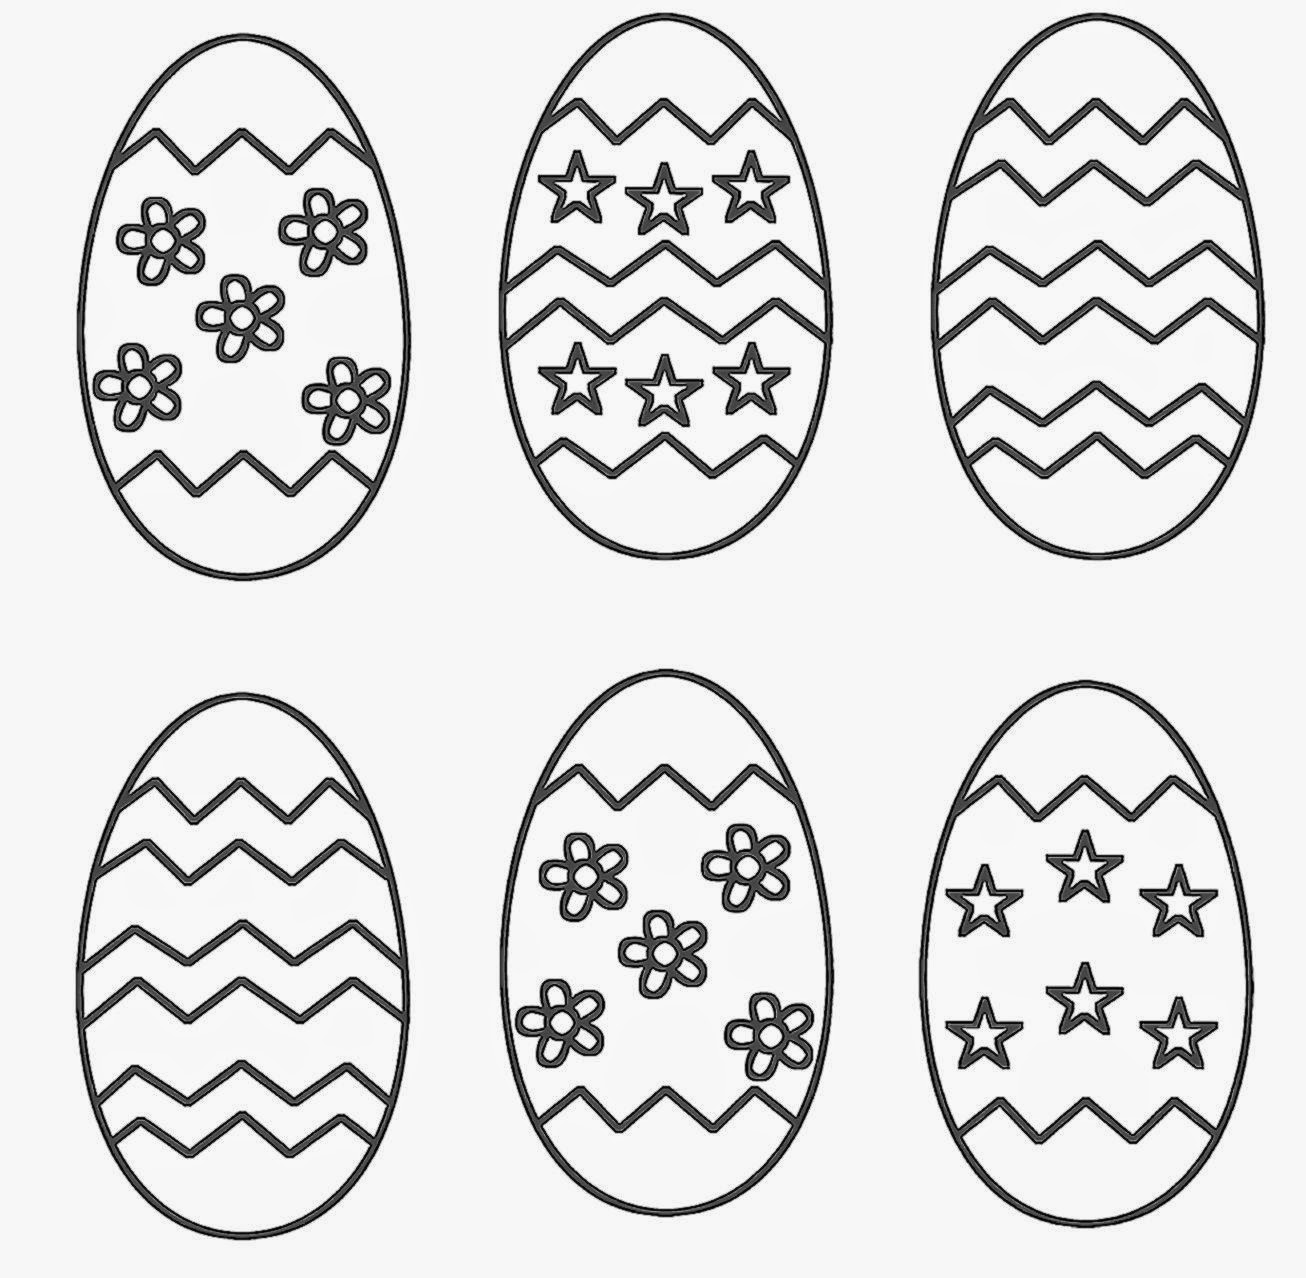 Bewitching image with easter egg printable coloring pages